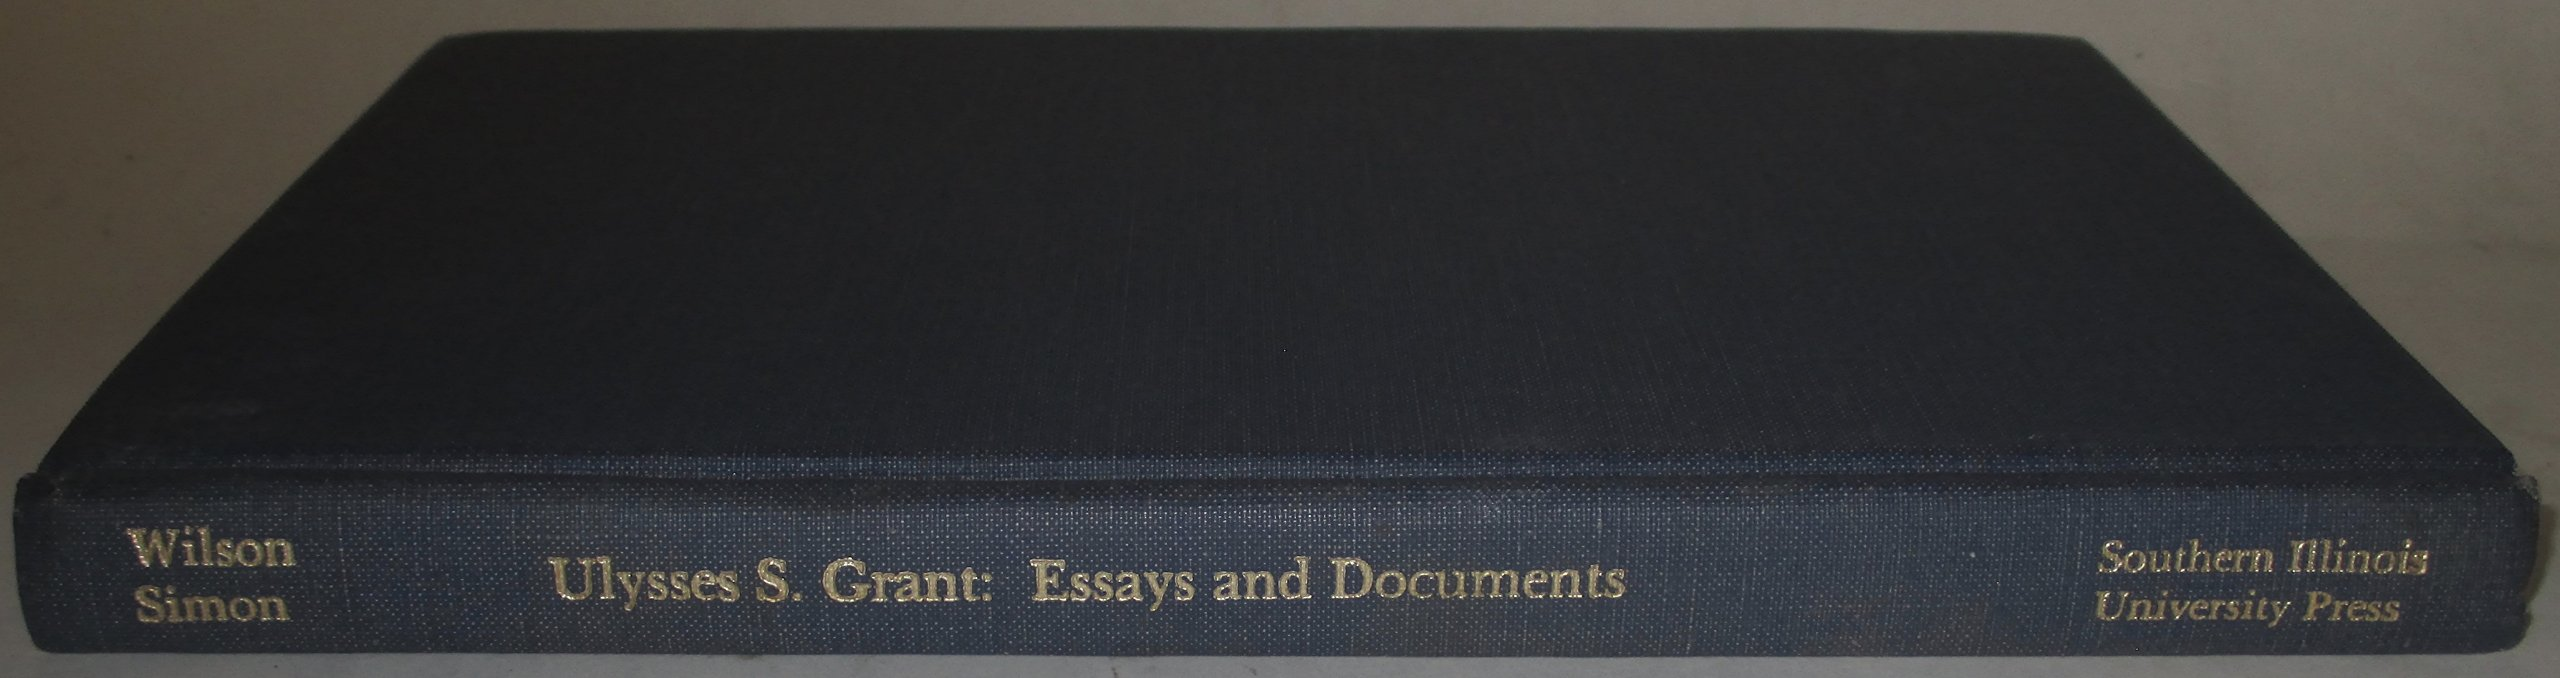 ulysses s grant essays and documents occasional publications ulysses s grant essays and documents occasional publications ulysses s grant association david l wilson john y simon 9780809310197 com